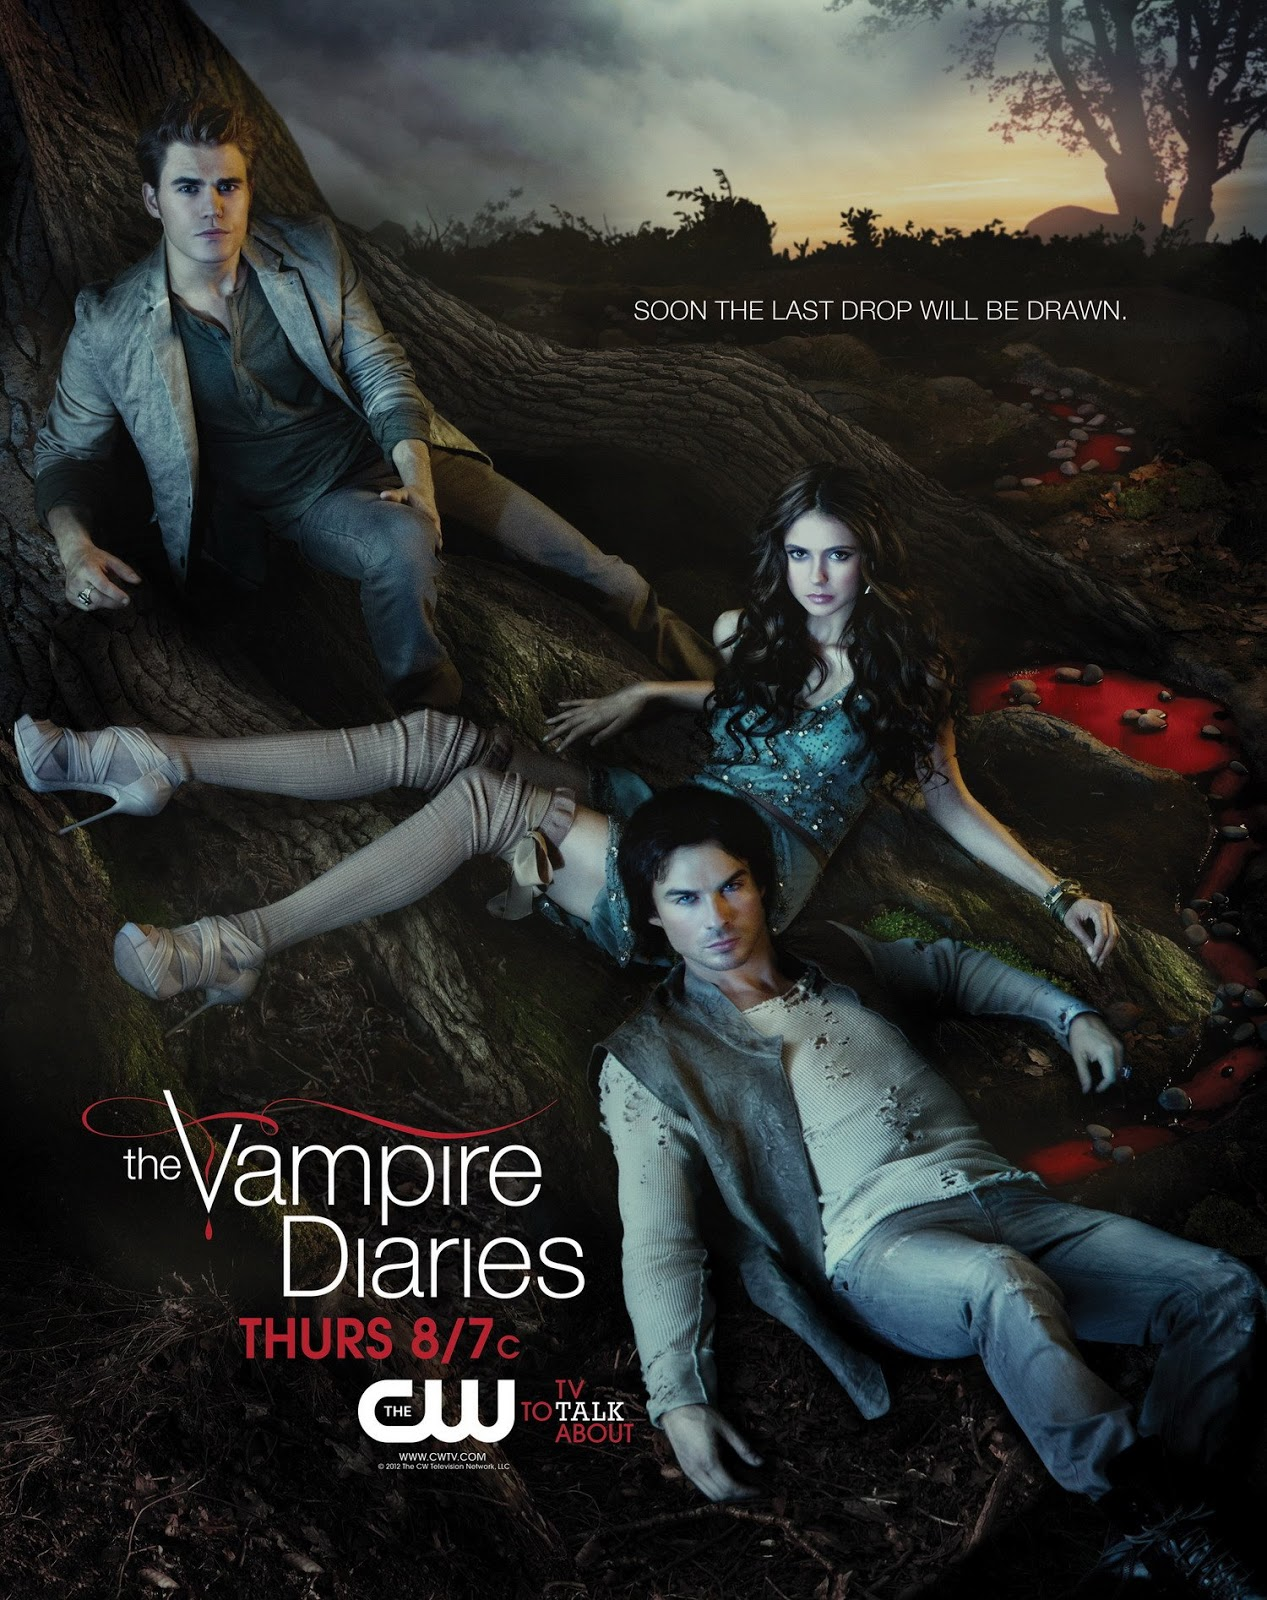 the vampire diaries poster gallery6 tv series posters